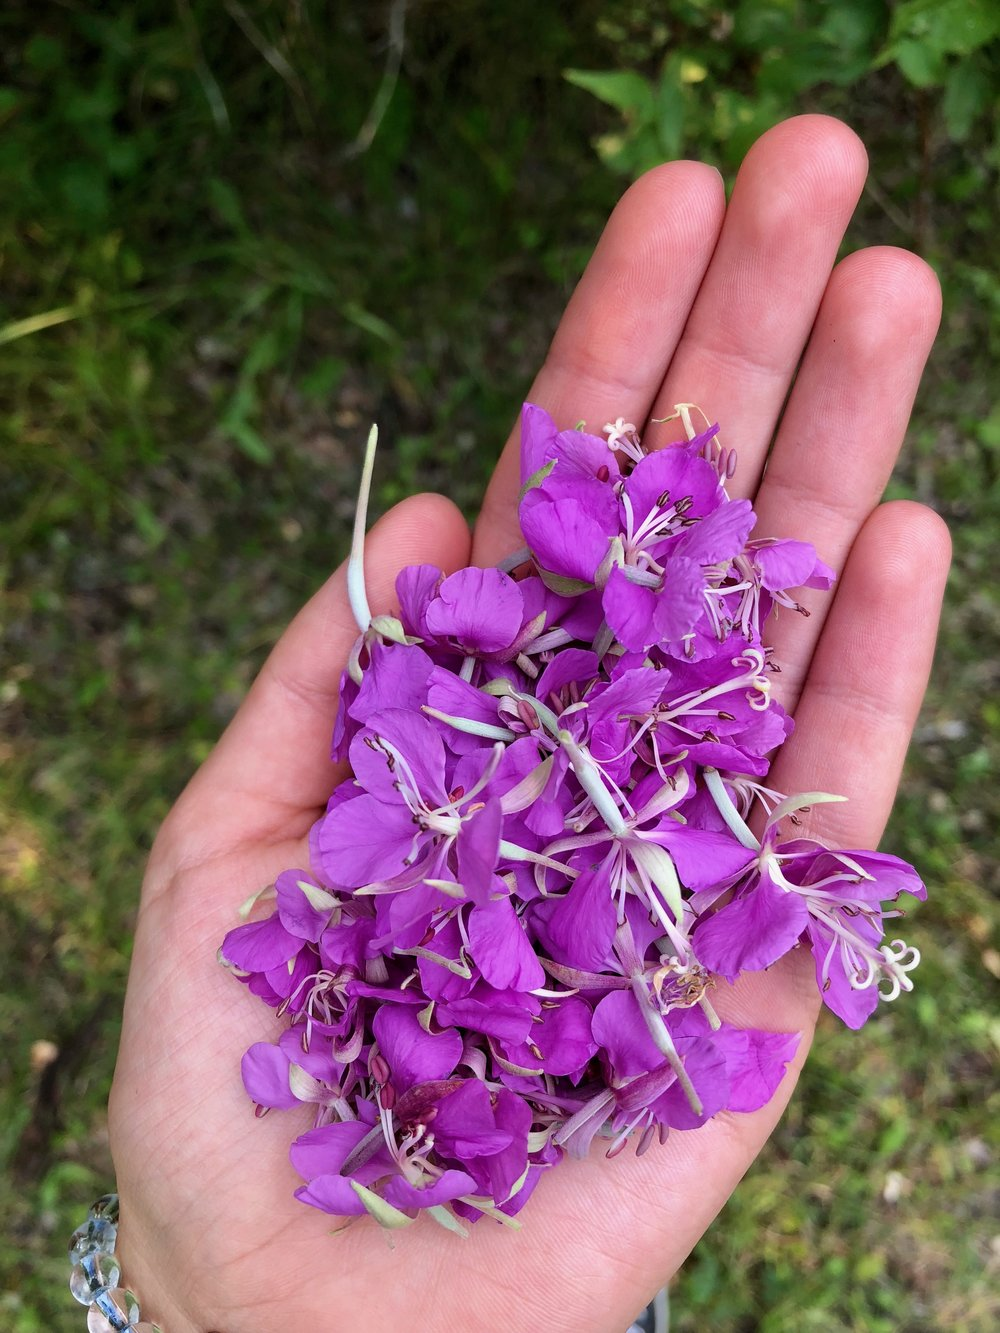 Wildcrafting fireweed flowers.